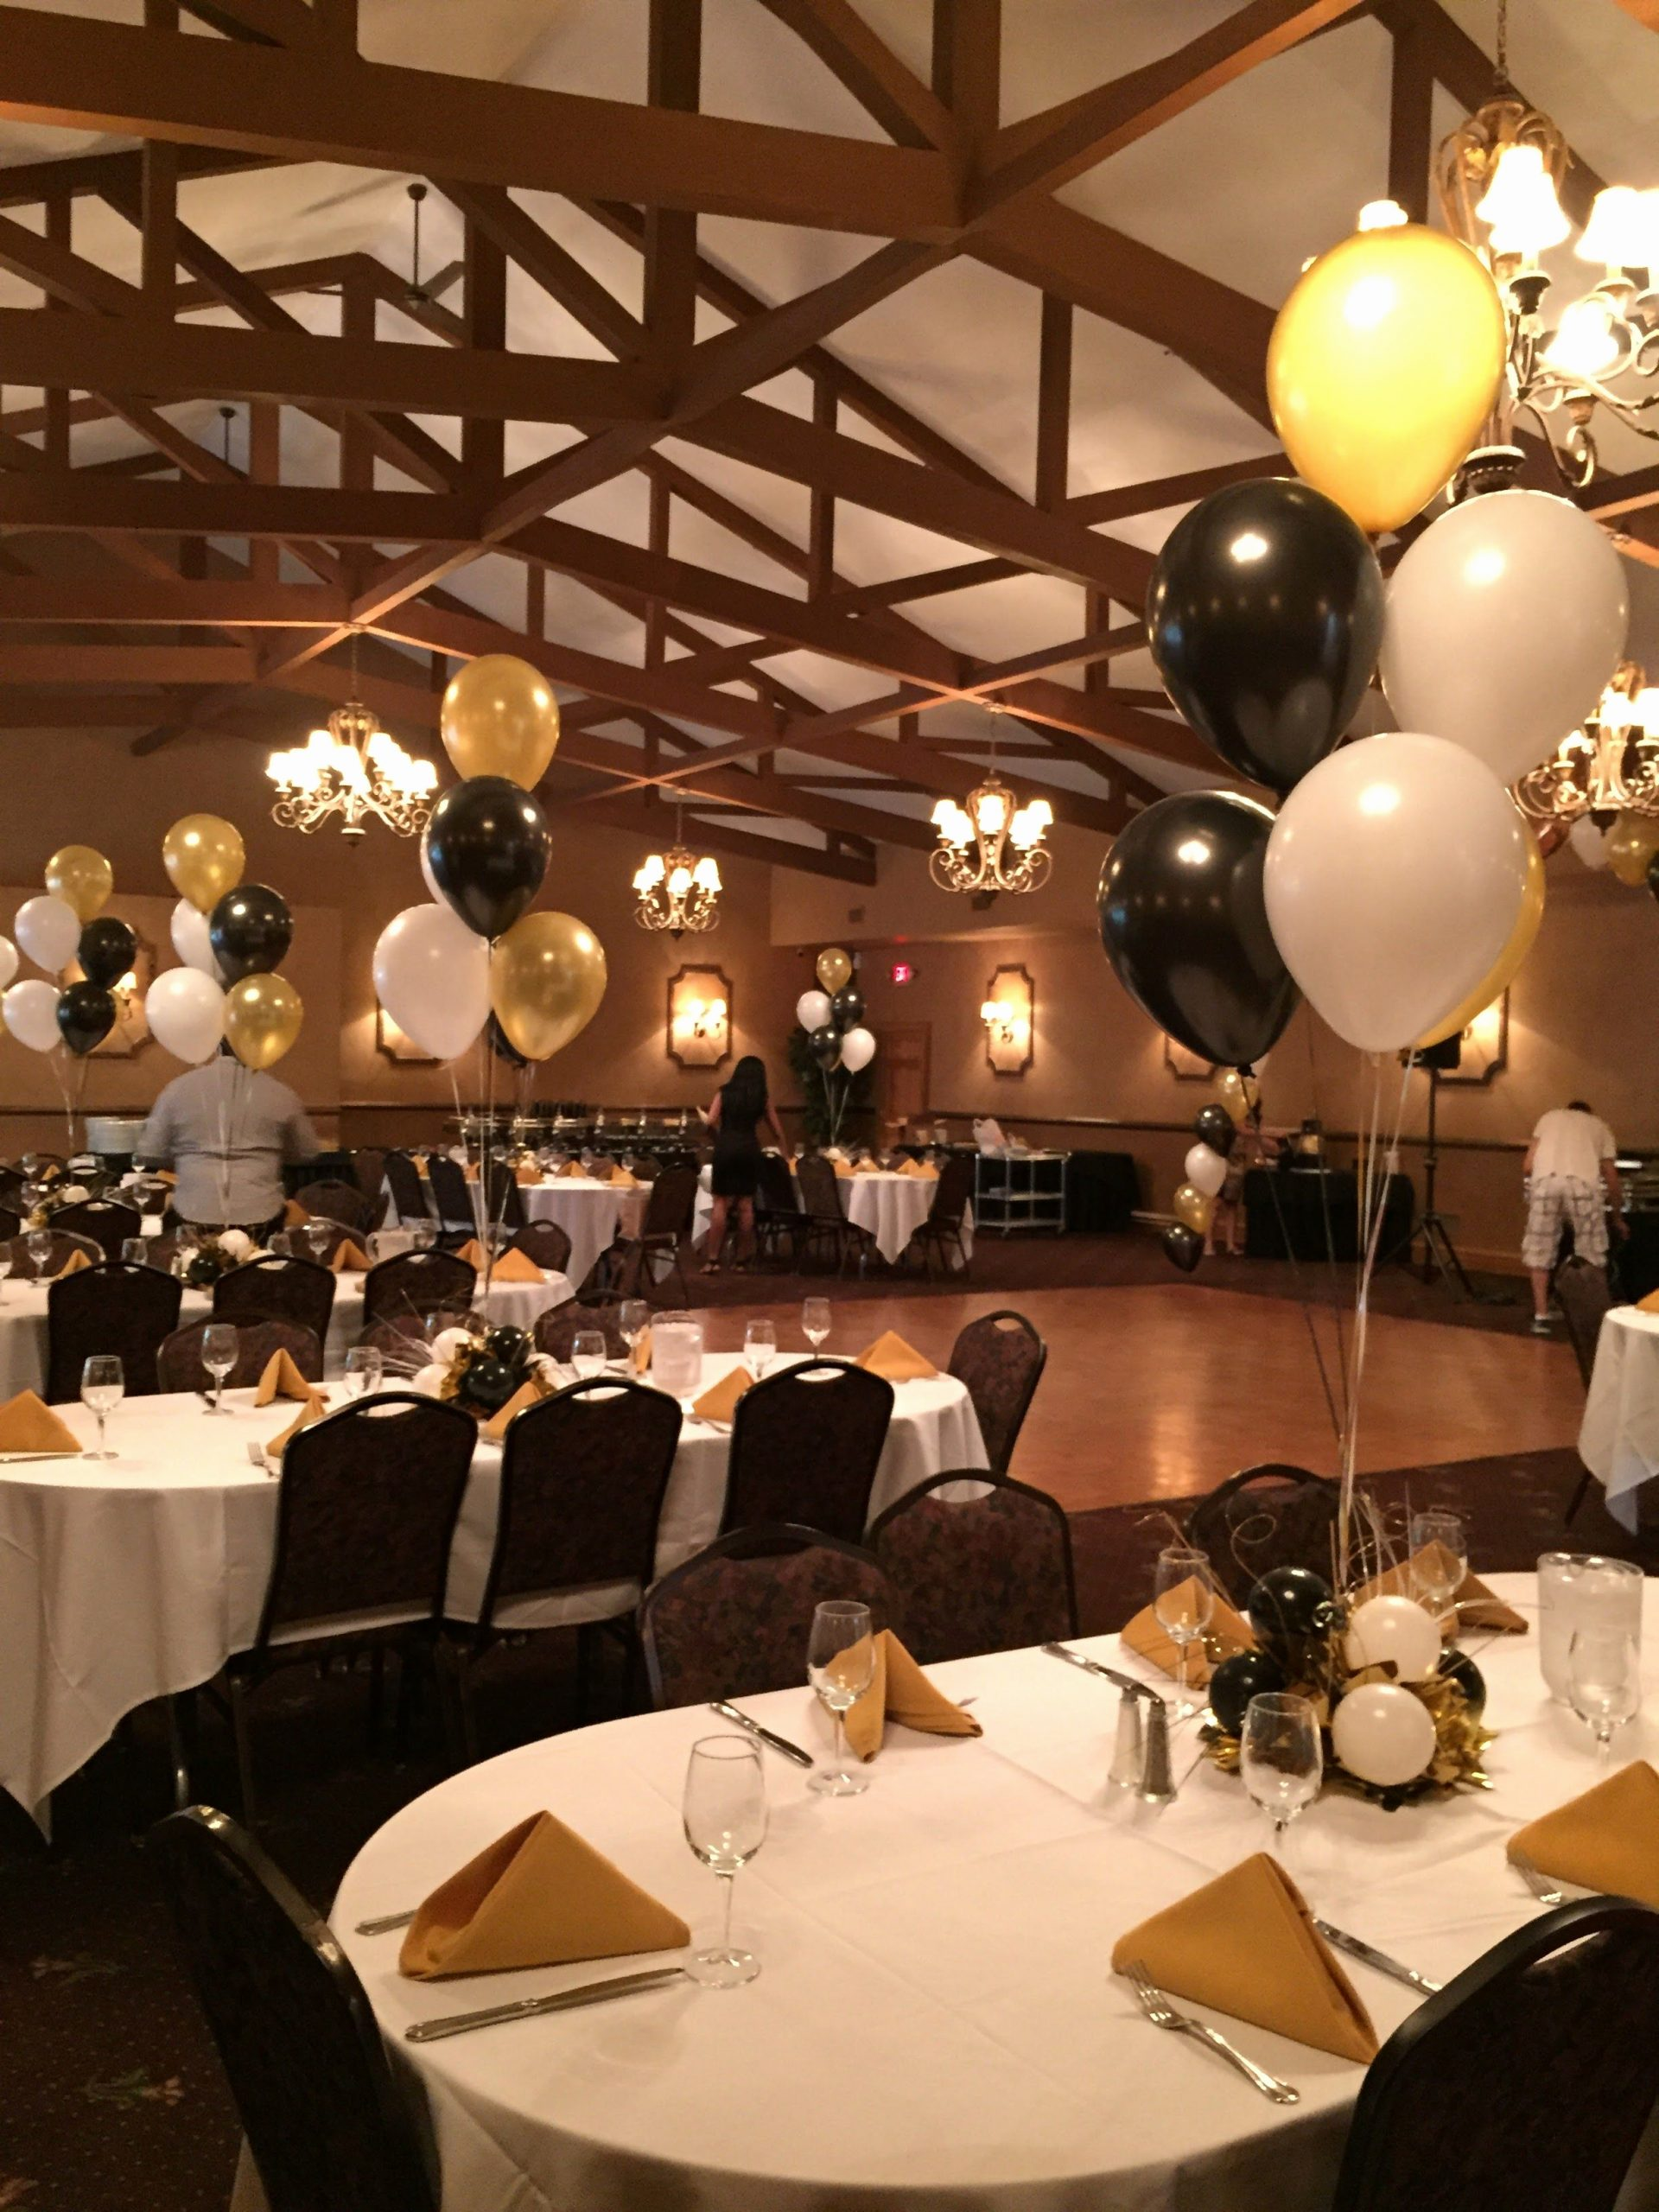 60 Year Old Birthday Decoration Ideas Luxury 60th Birthday Looking Good In Black White and Gold Custom